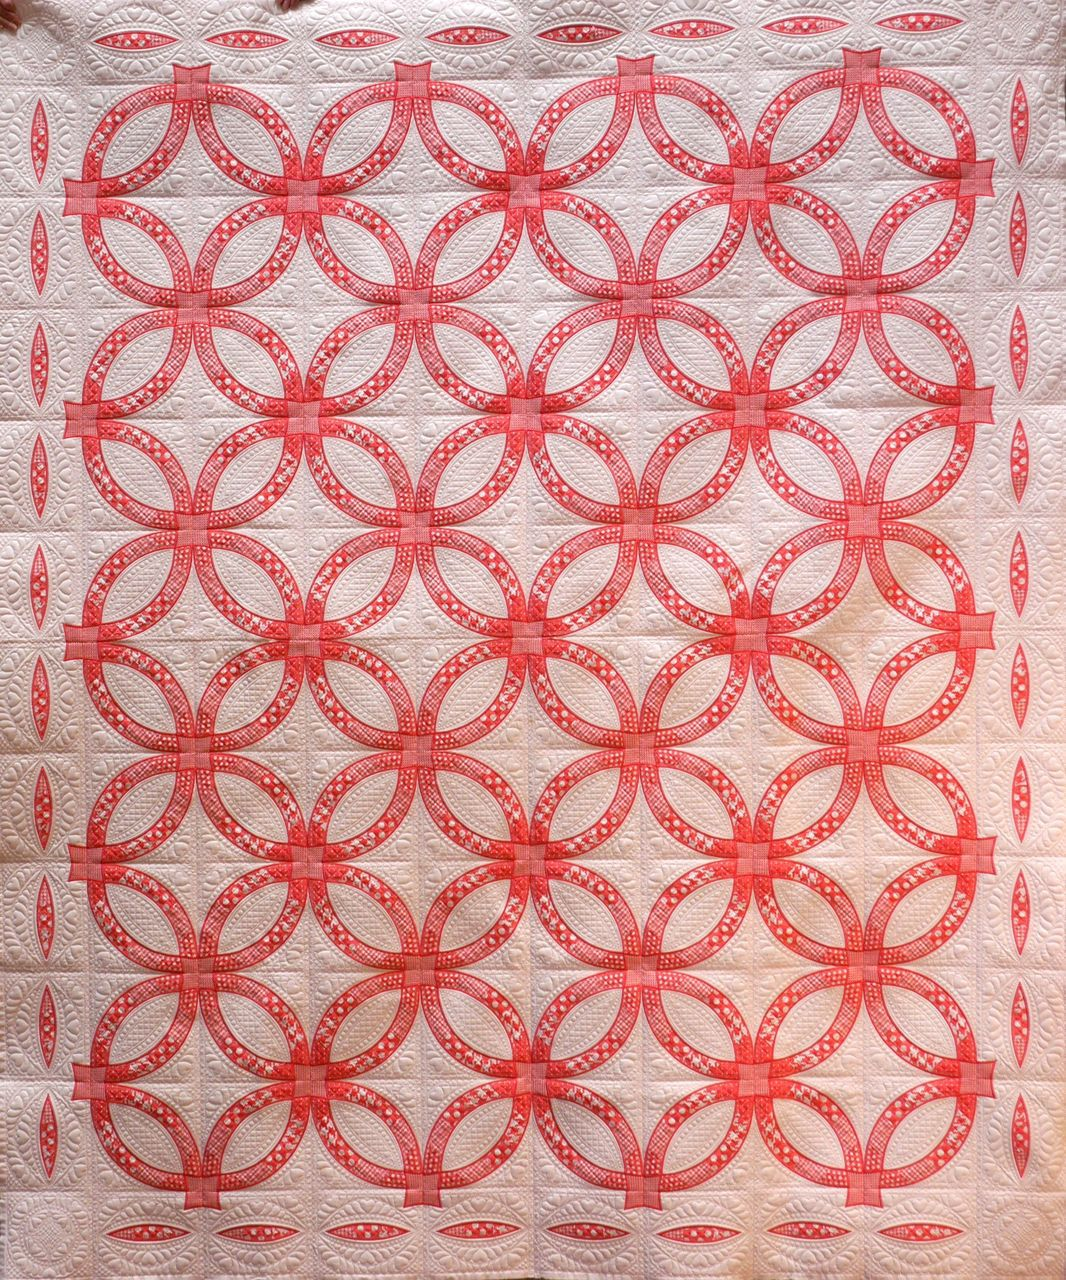 Image of: Red Double Wedding Ring Quilt Pattern